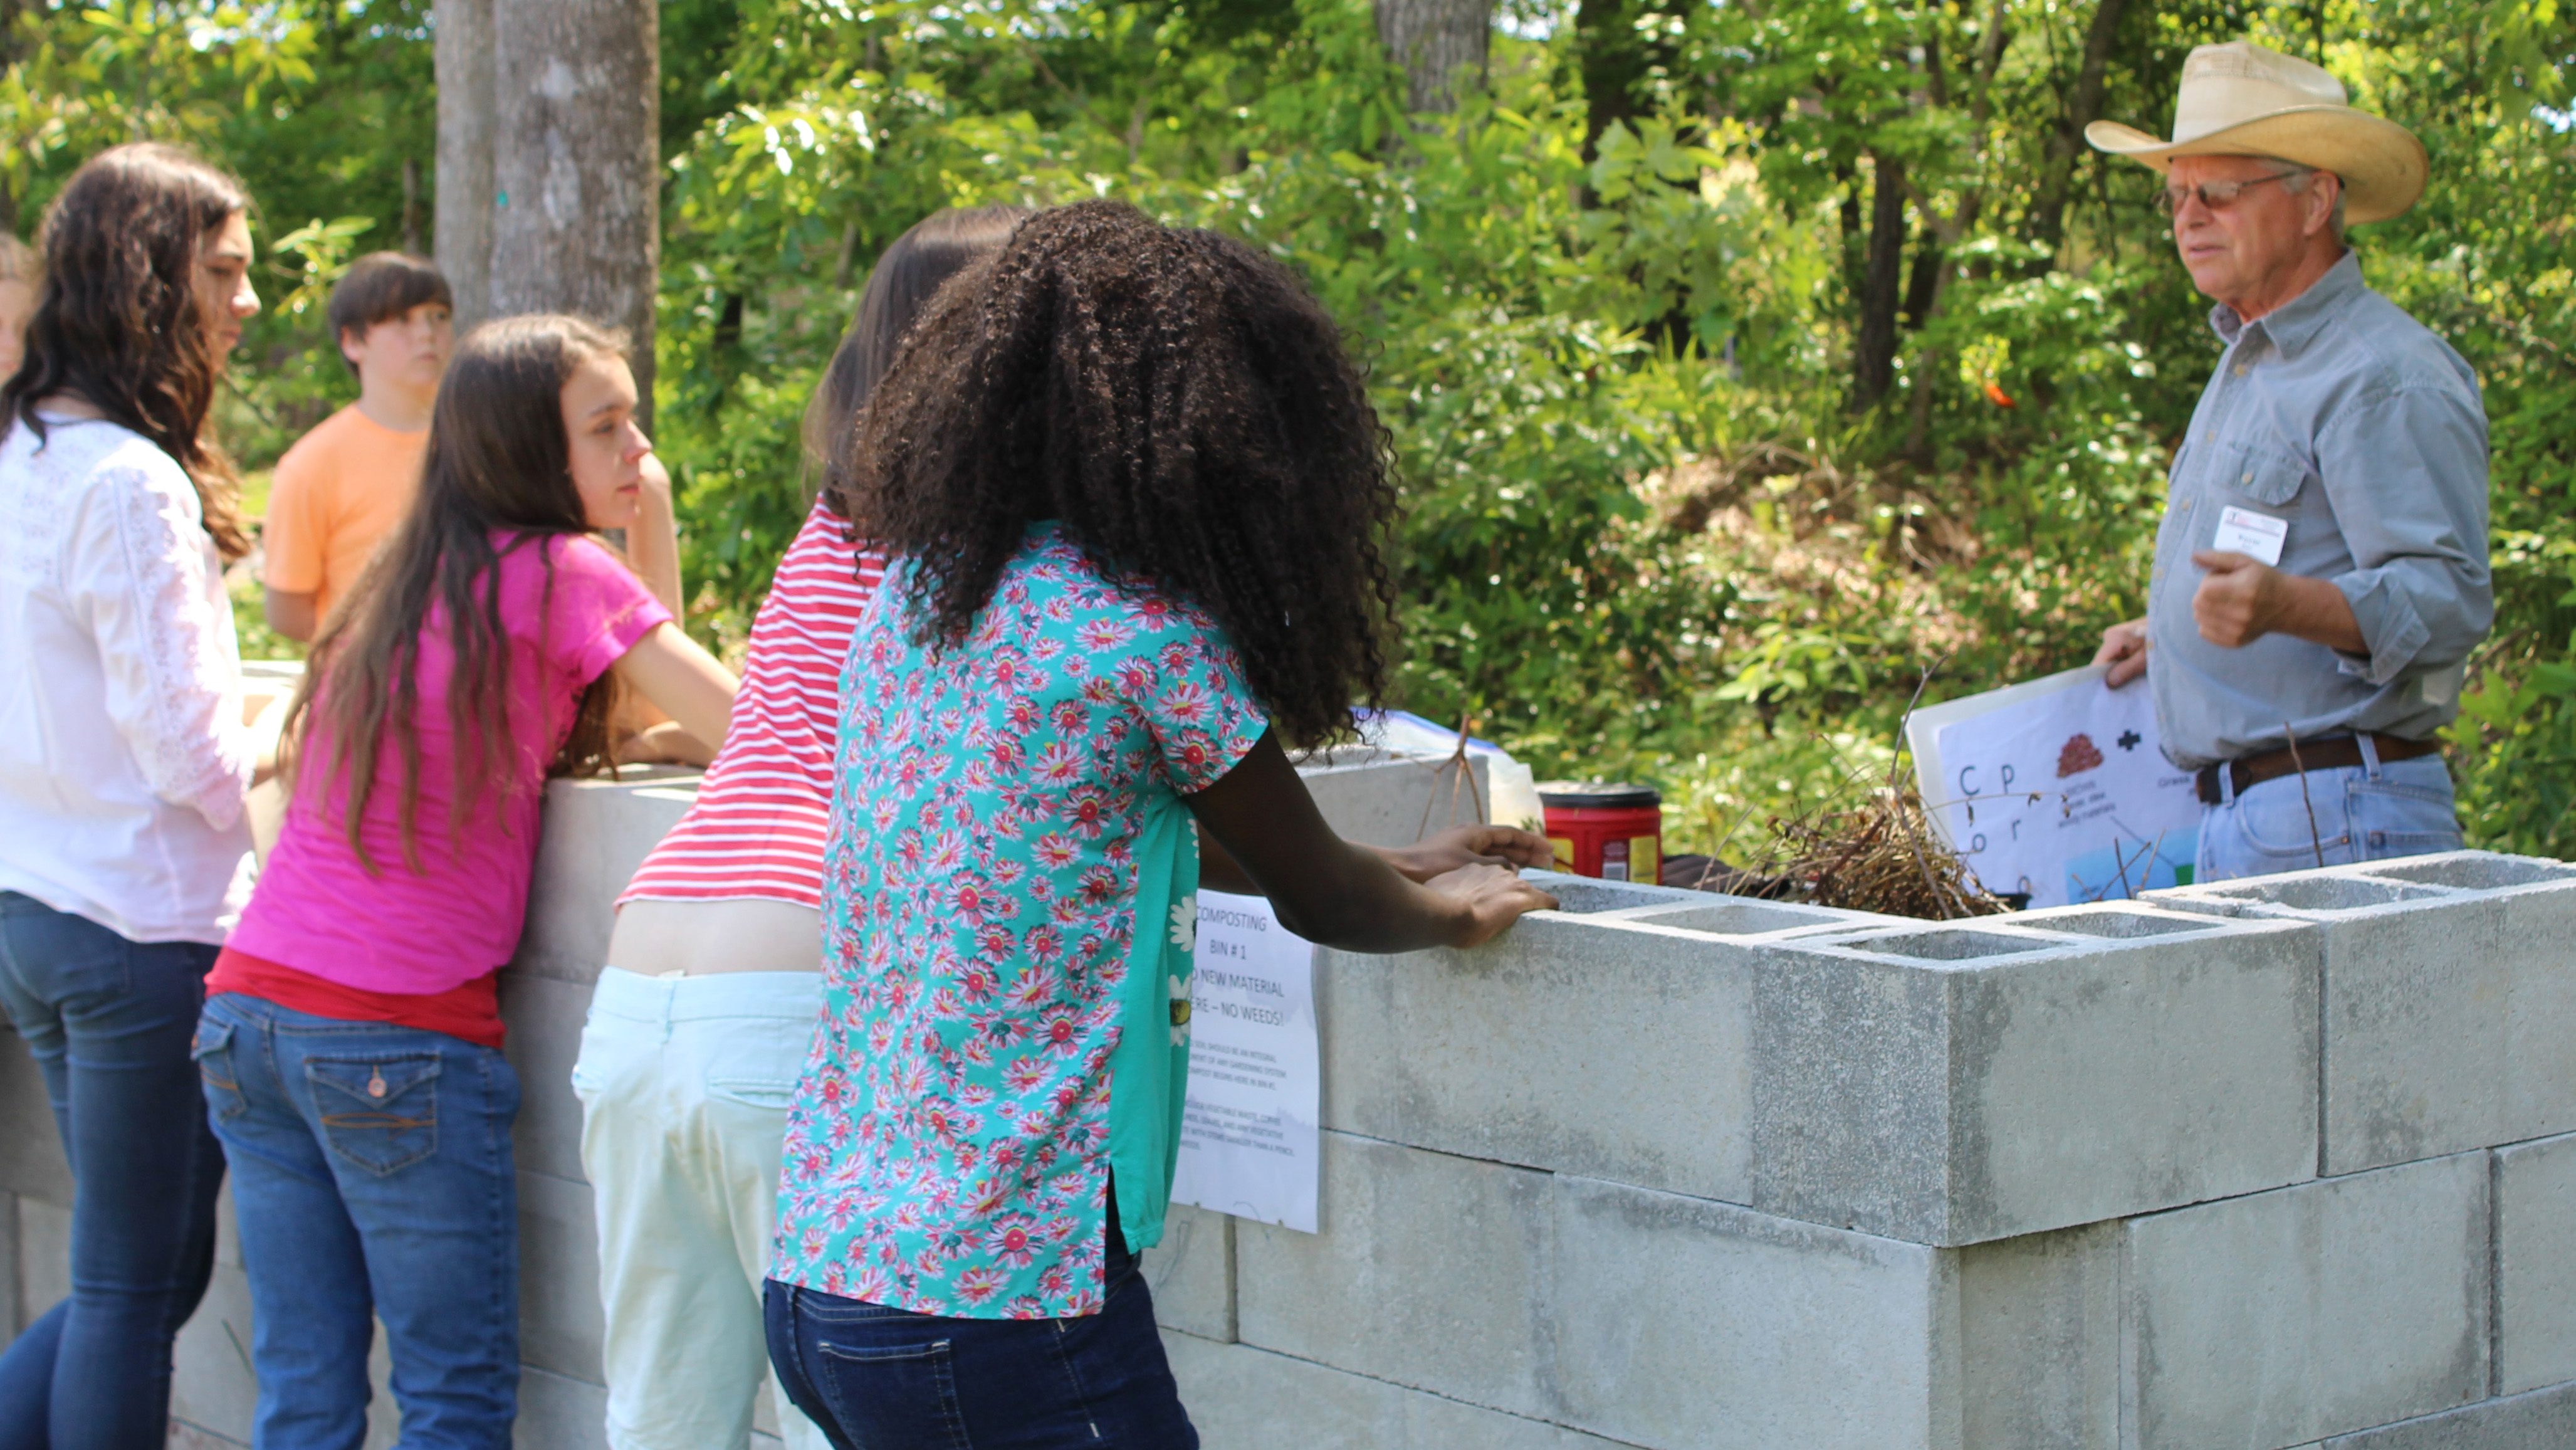 Students learn about composting from a Master Gardener volunteer.